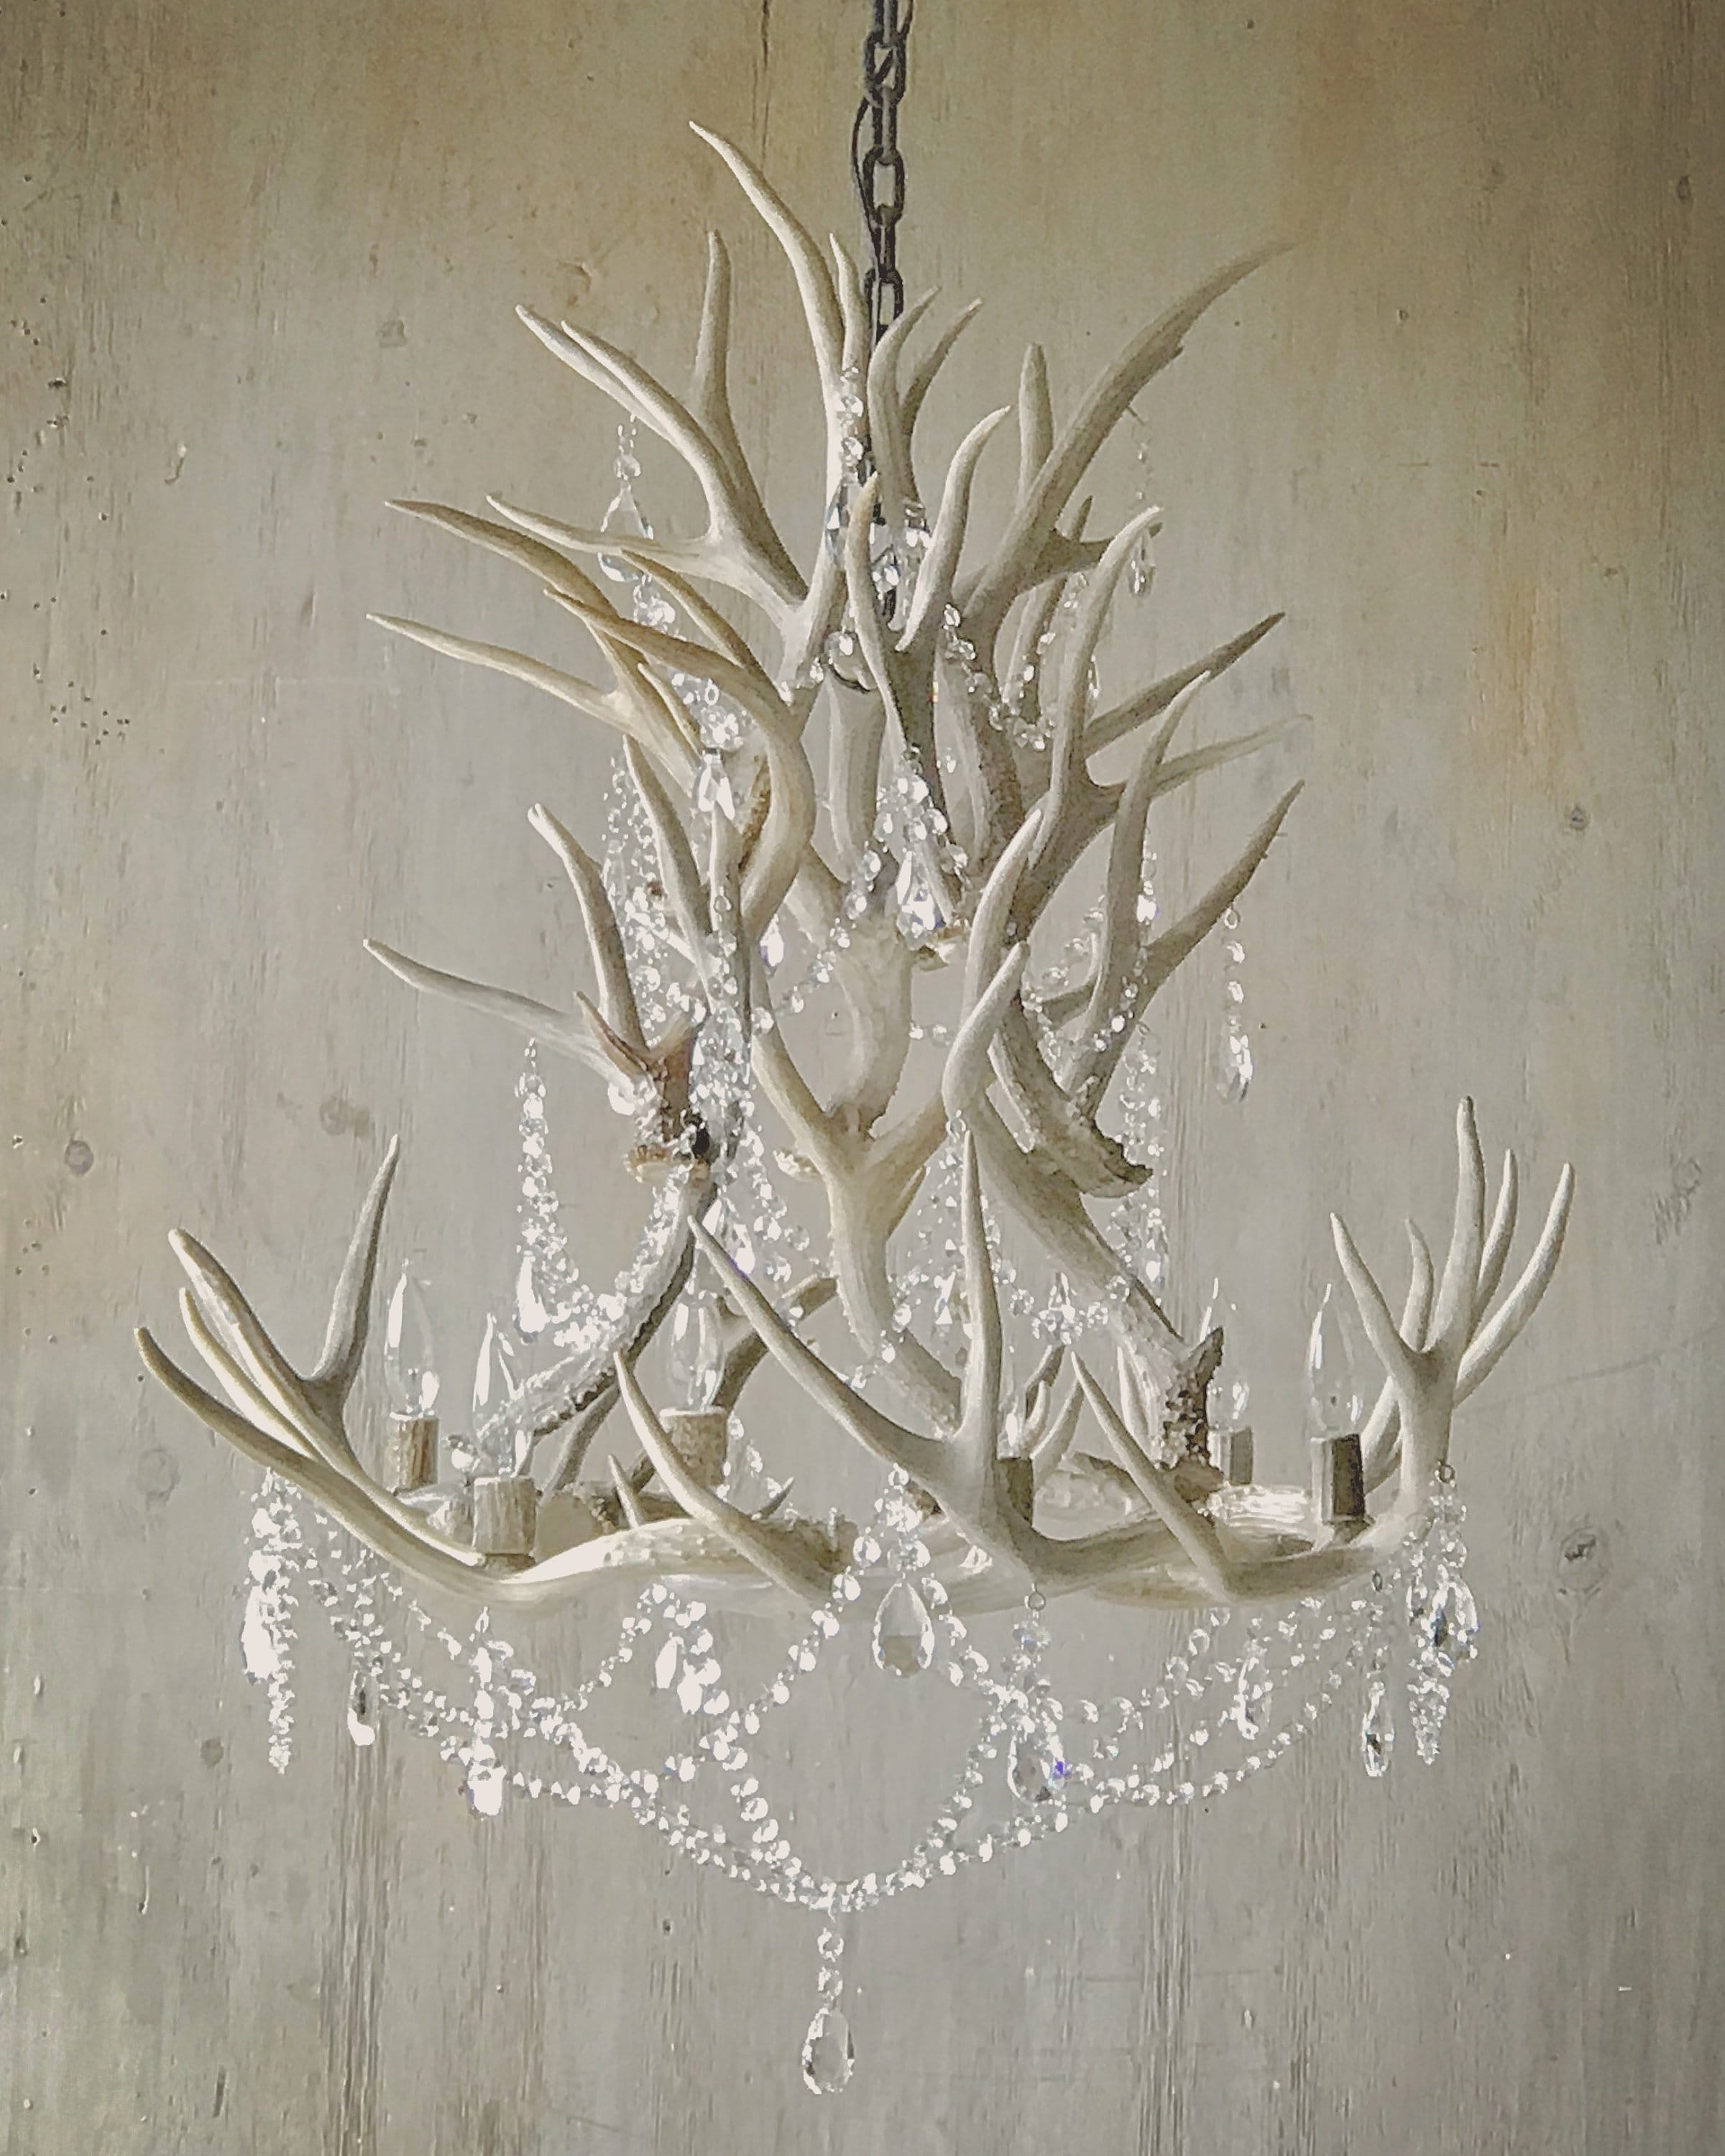 Antler Chandelier, hand crafted from real antlers adorned with authentic leaded crystals.